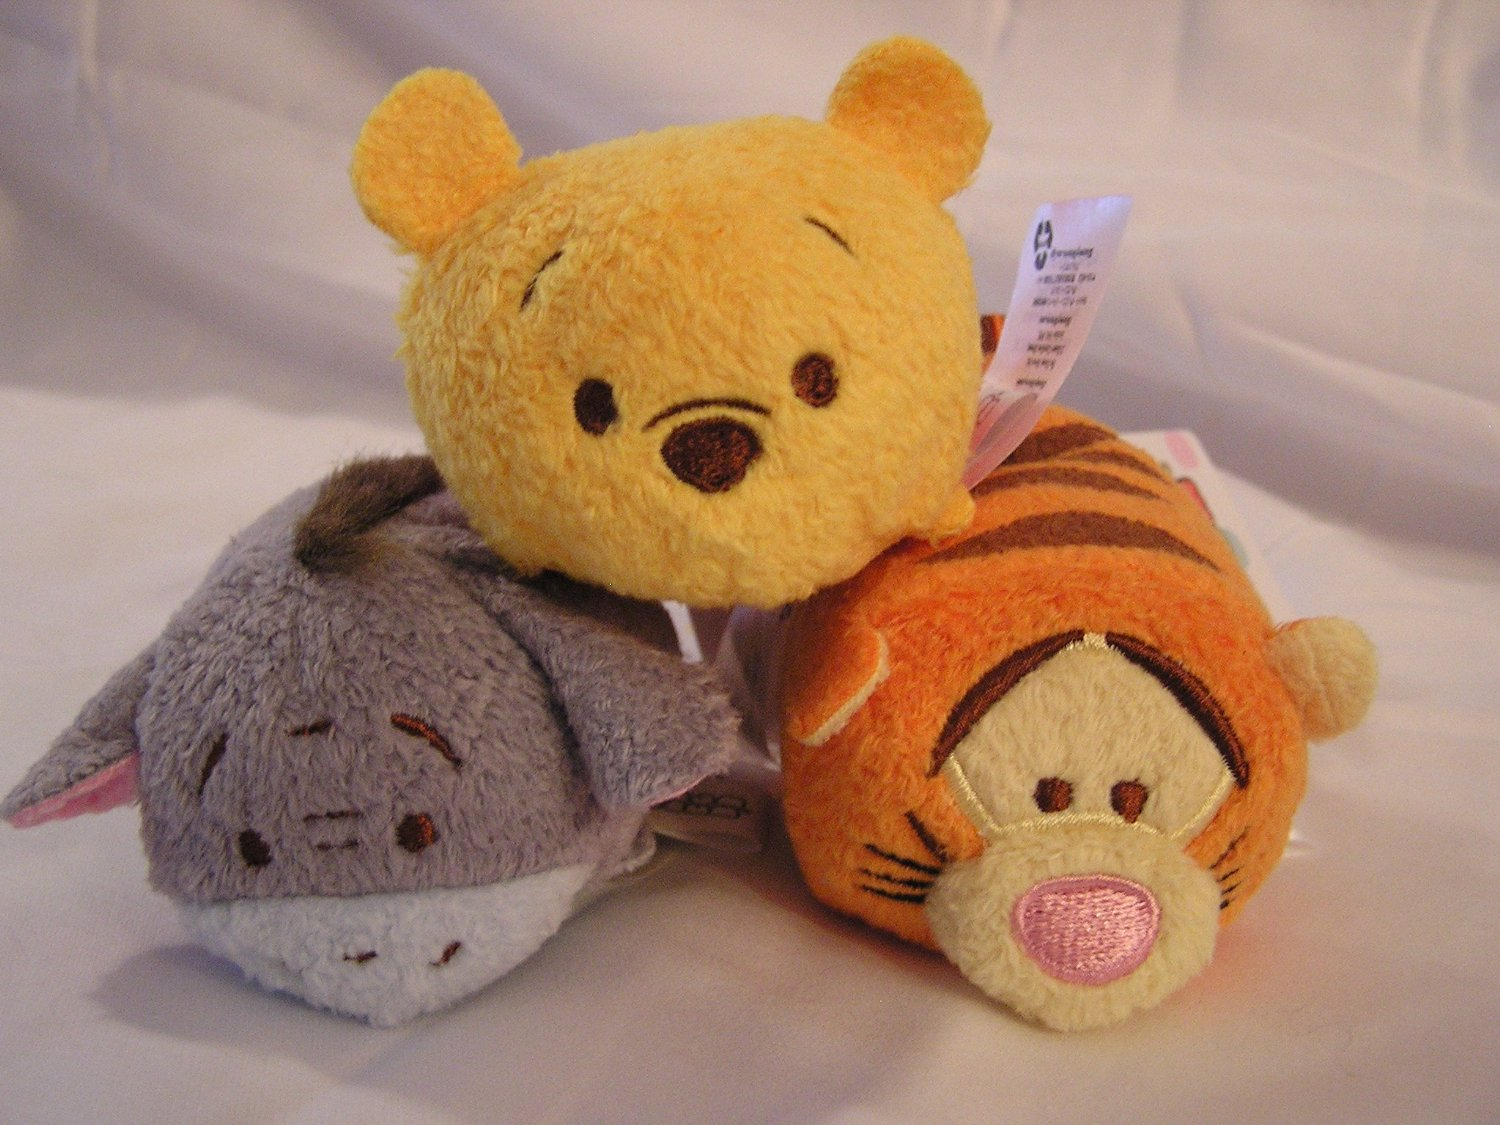 "Disney Winnie the Pooh, Tigger & Eeyore Tsum Tsum 3.5"" Mini Plush Animal Figures (3 ct bundle)"